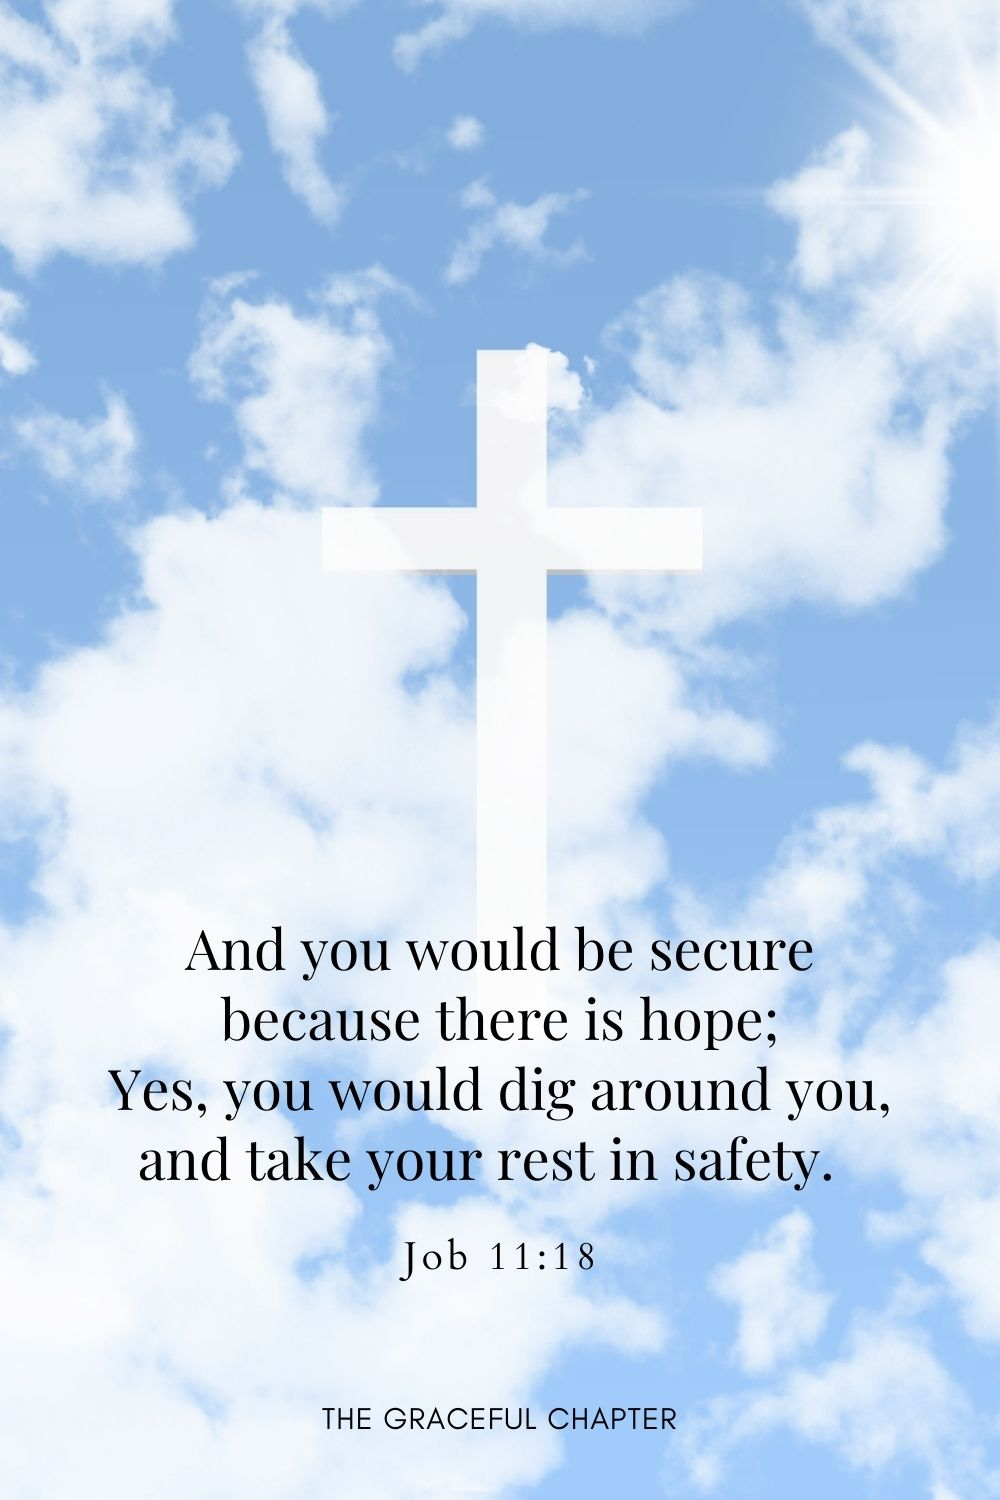 And you would be secure because there is hope; Yes, you would dig around you, and take your rest in safety.Job 11:18